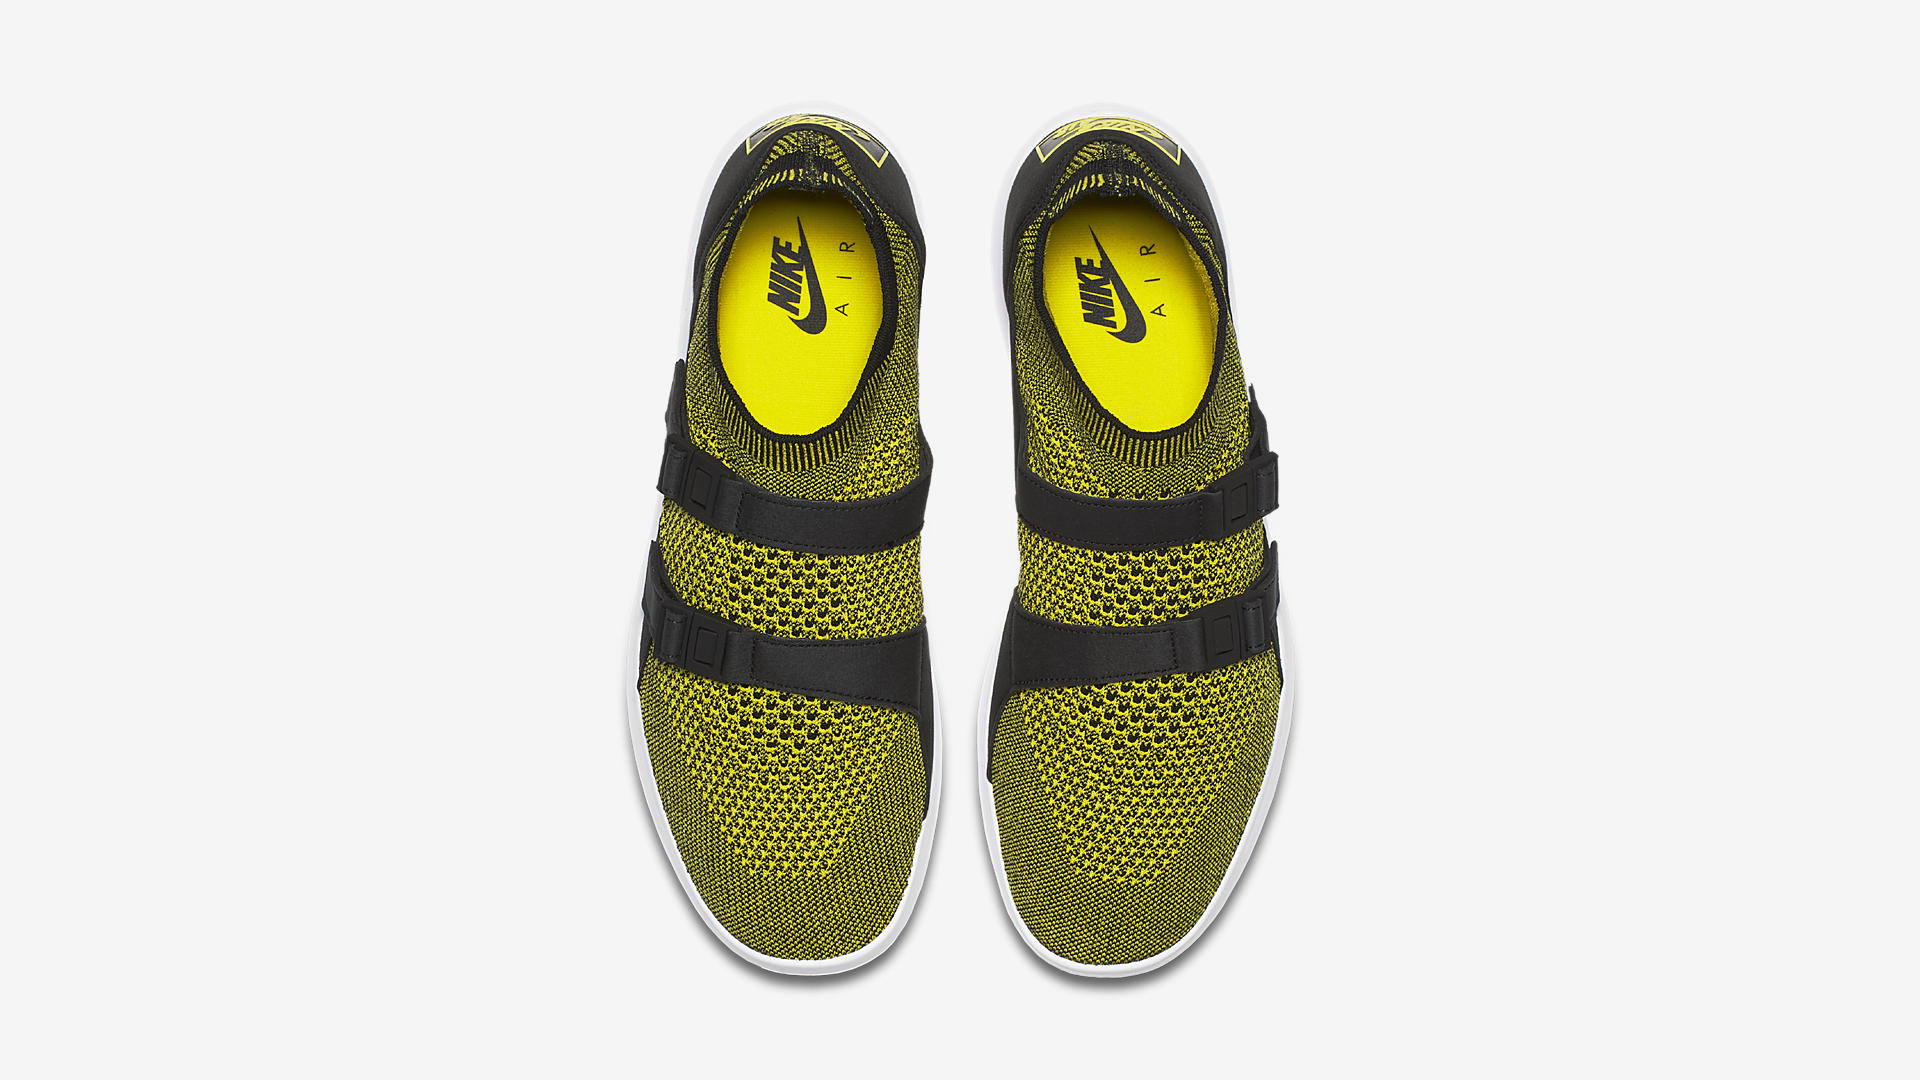 Nike Air Sock Racer Ultra Flyknit Yellow Strike 98022 700 3